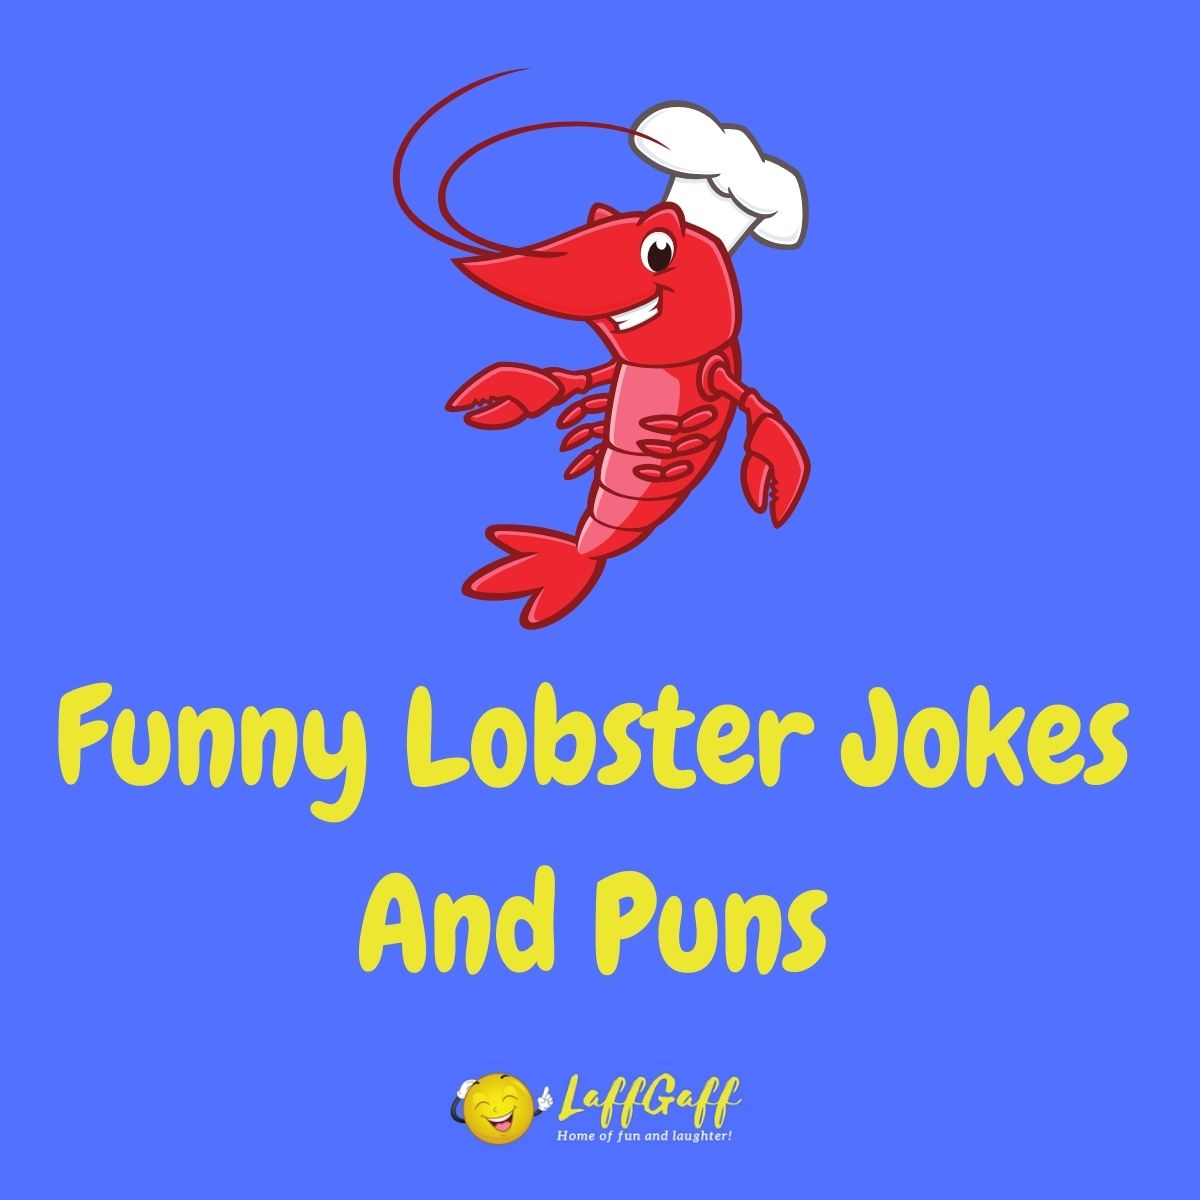 Featured image for a page of funny lobster jokes and puns.